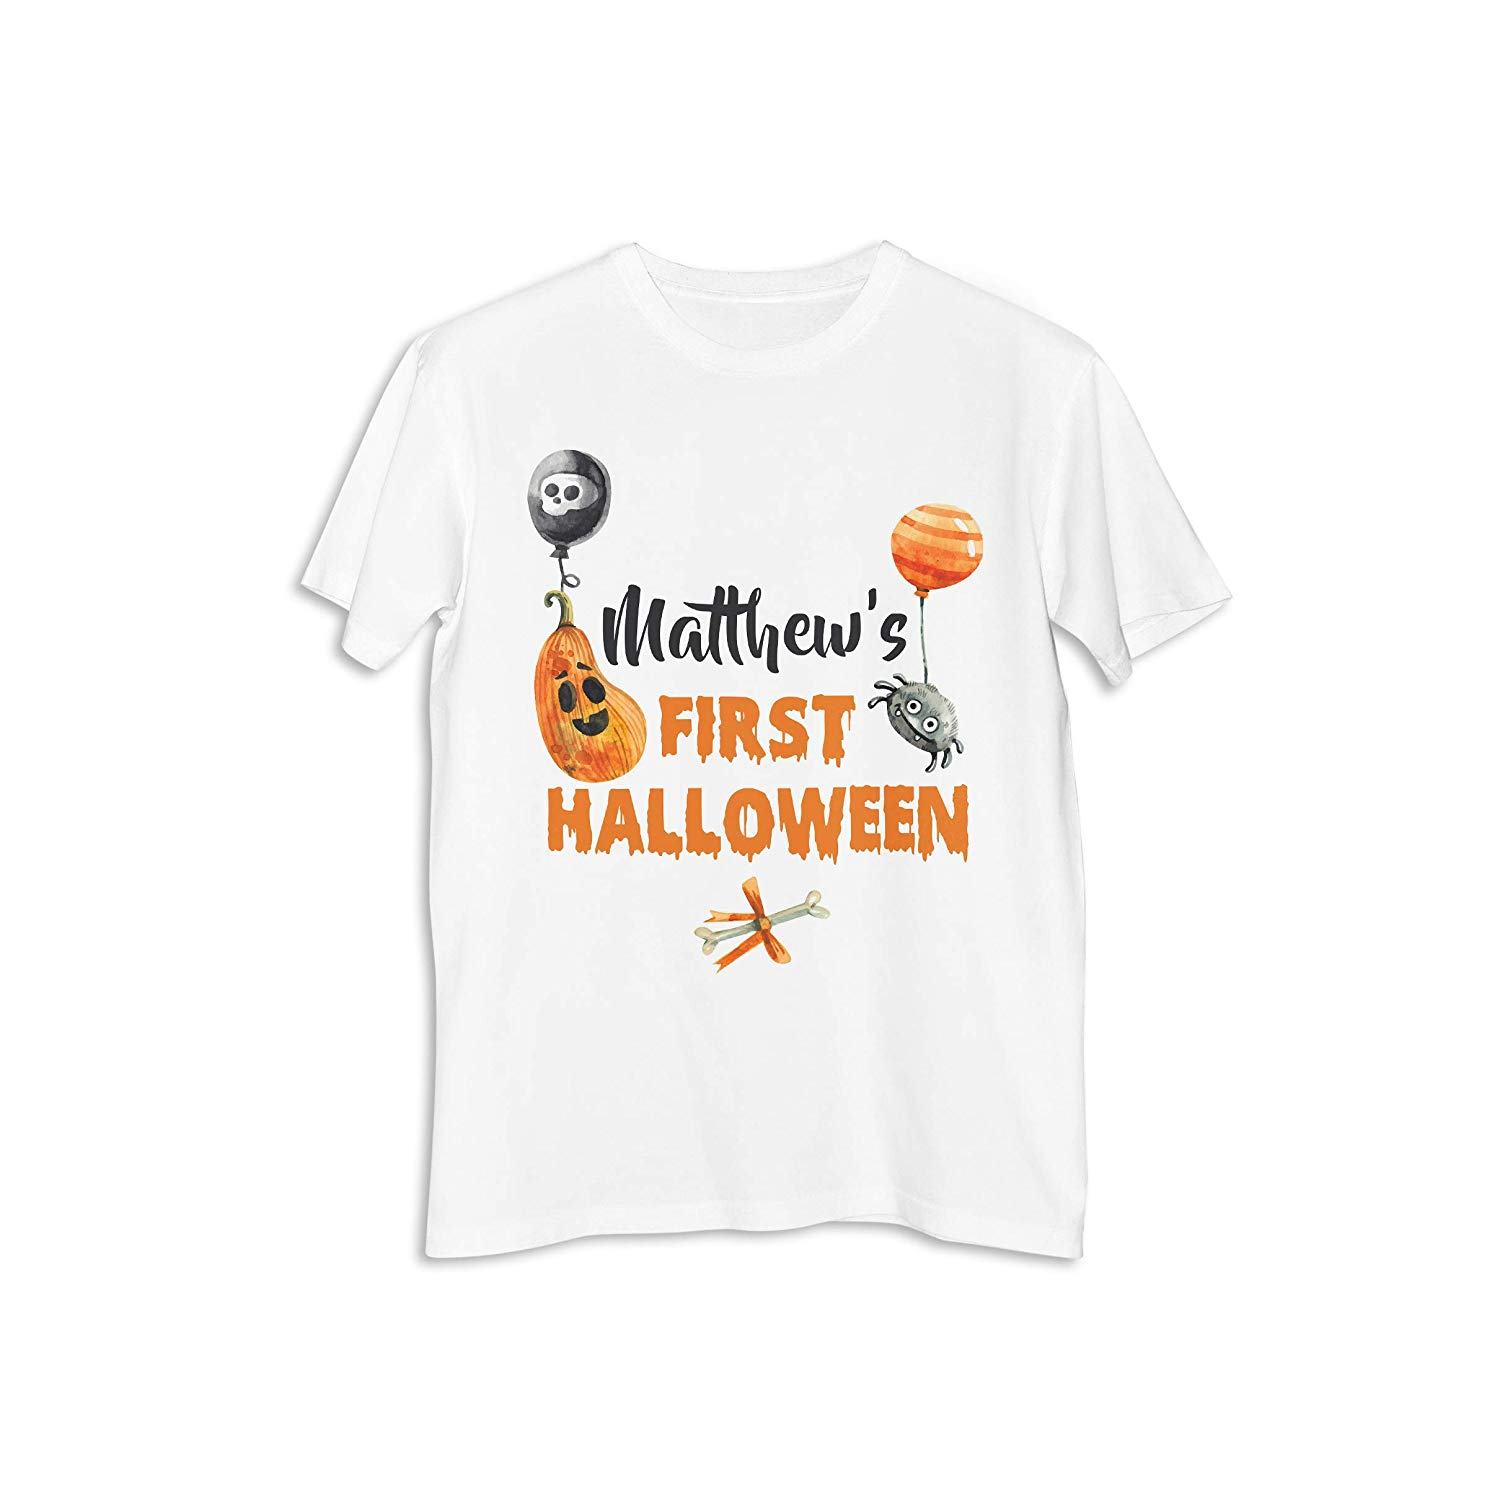 dd3a0a25c82 Get Quotations · Personalized First Halloween Pumpkin Baloon Tee Shirt  Happy Halloween Party Printed Shirt